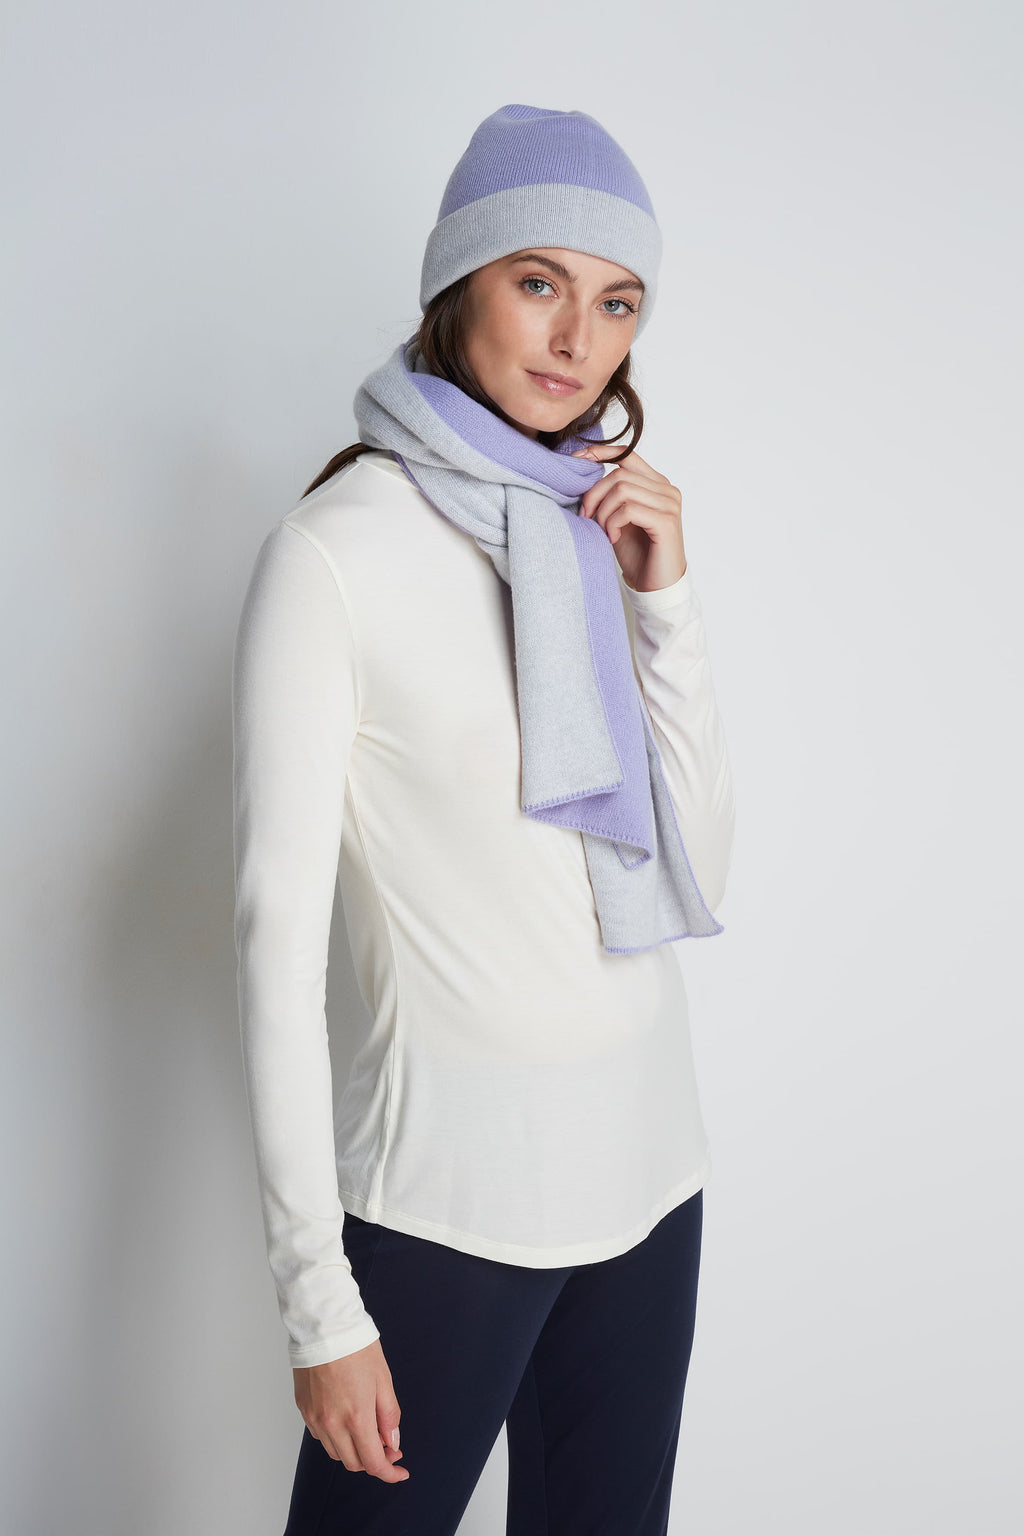 Reversible Scottish Cashmere Scarf by Lavender Hill Clothing - discover our Cashmere Accessories